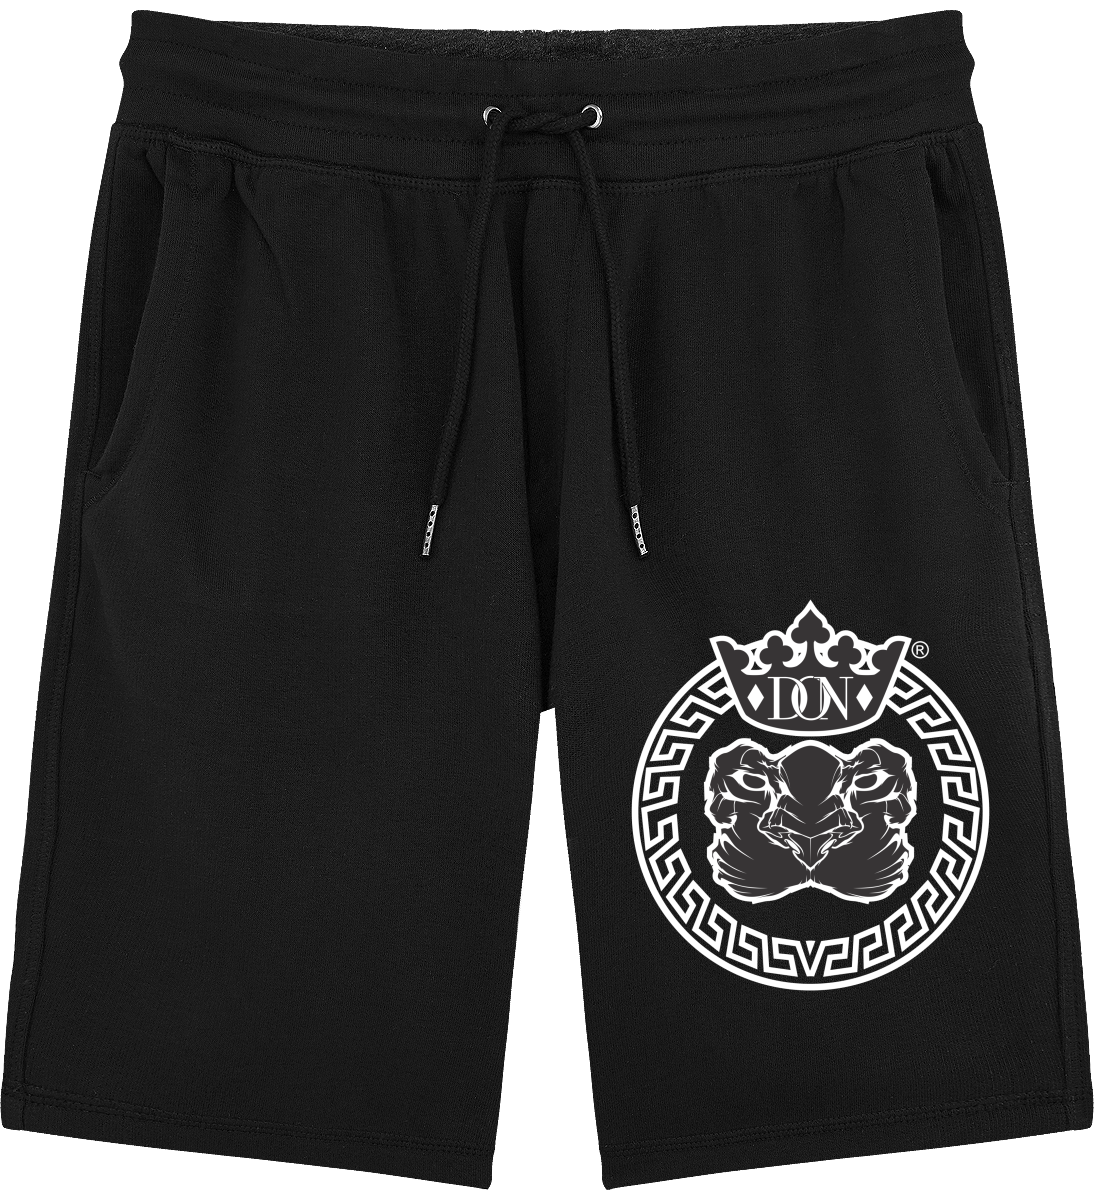 Mens Official Don Lions Pride Shorts - Black / S - Homme>Vêtements De Sport